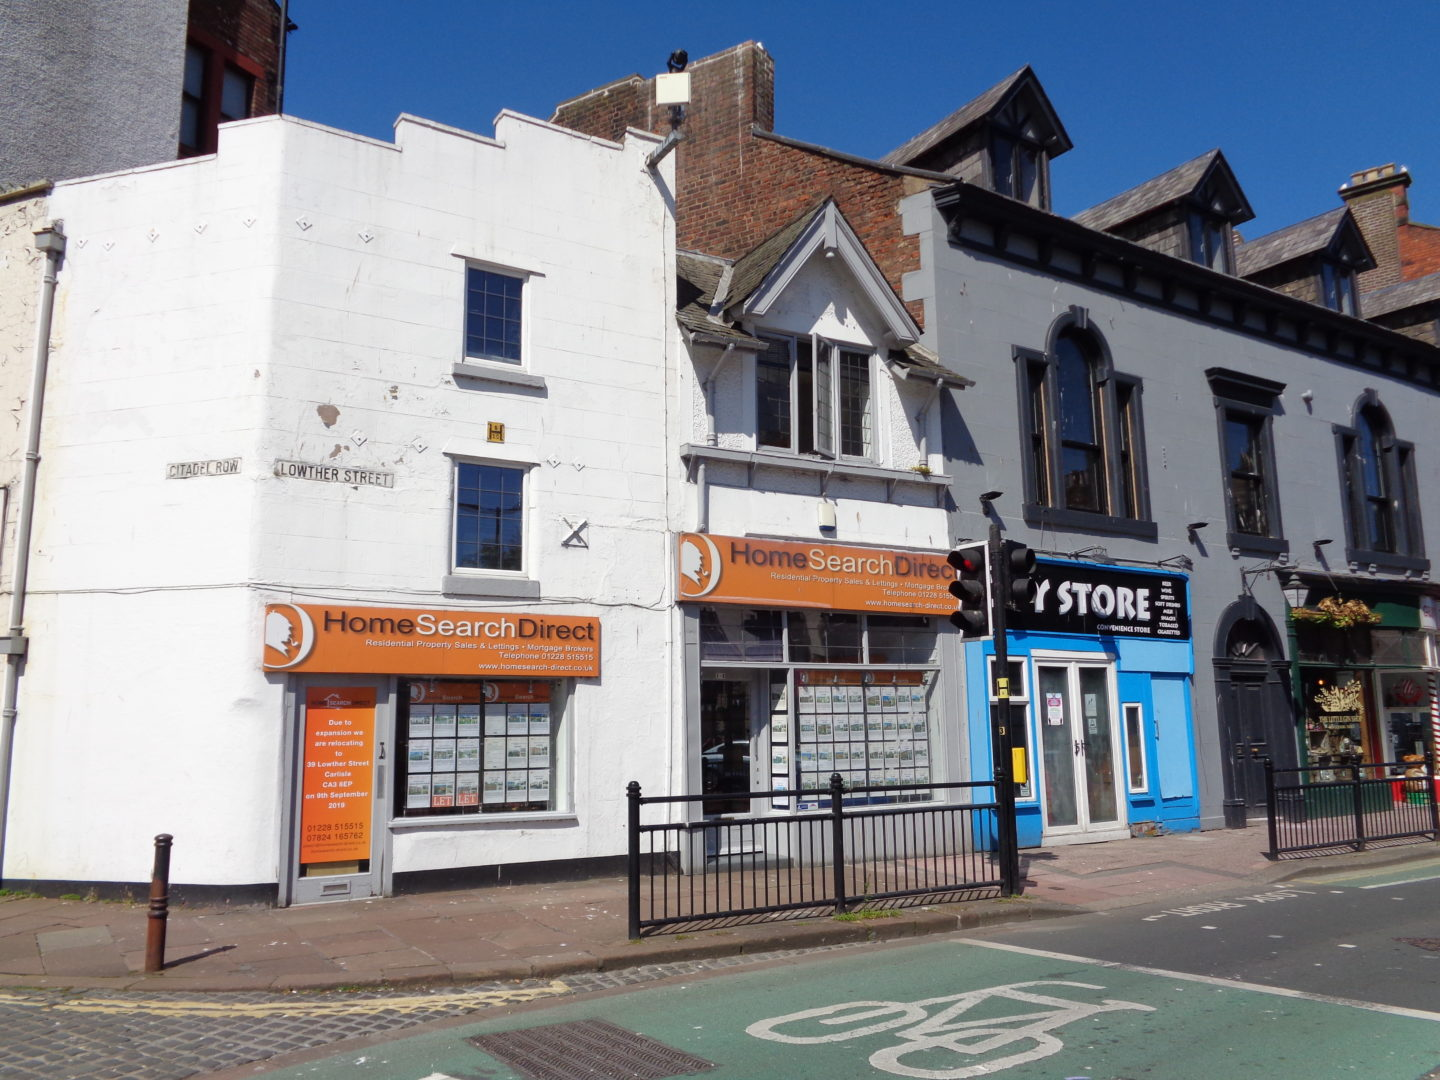 1A-5 Lowther Street, Carlisle – UNDER OFFER